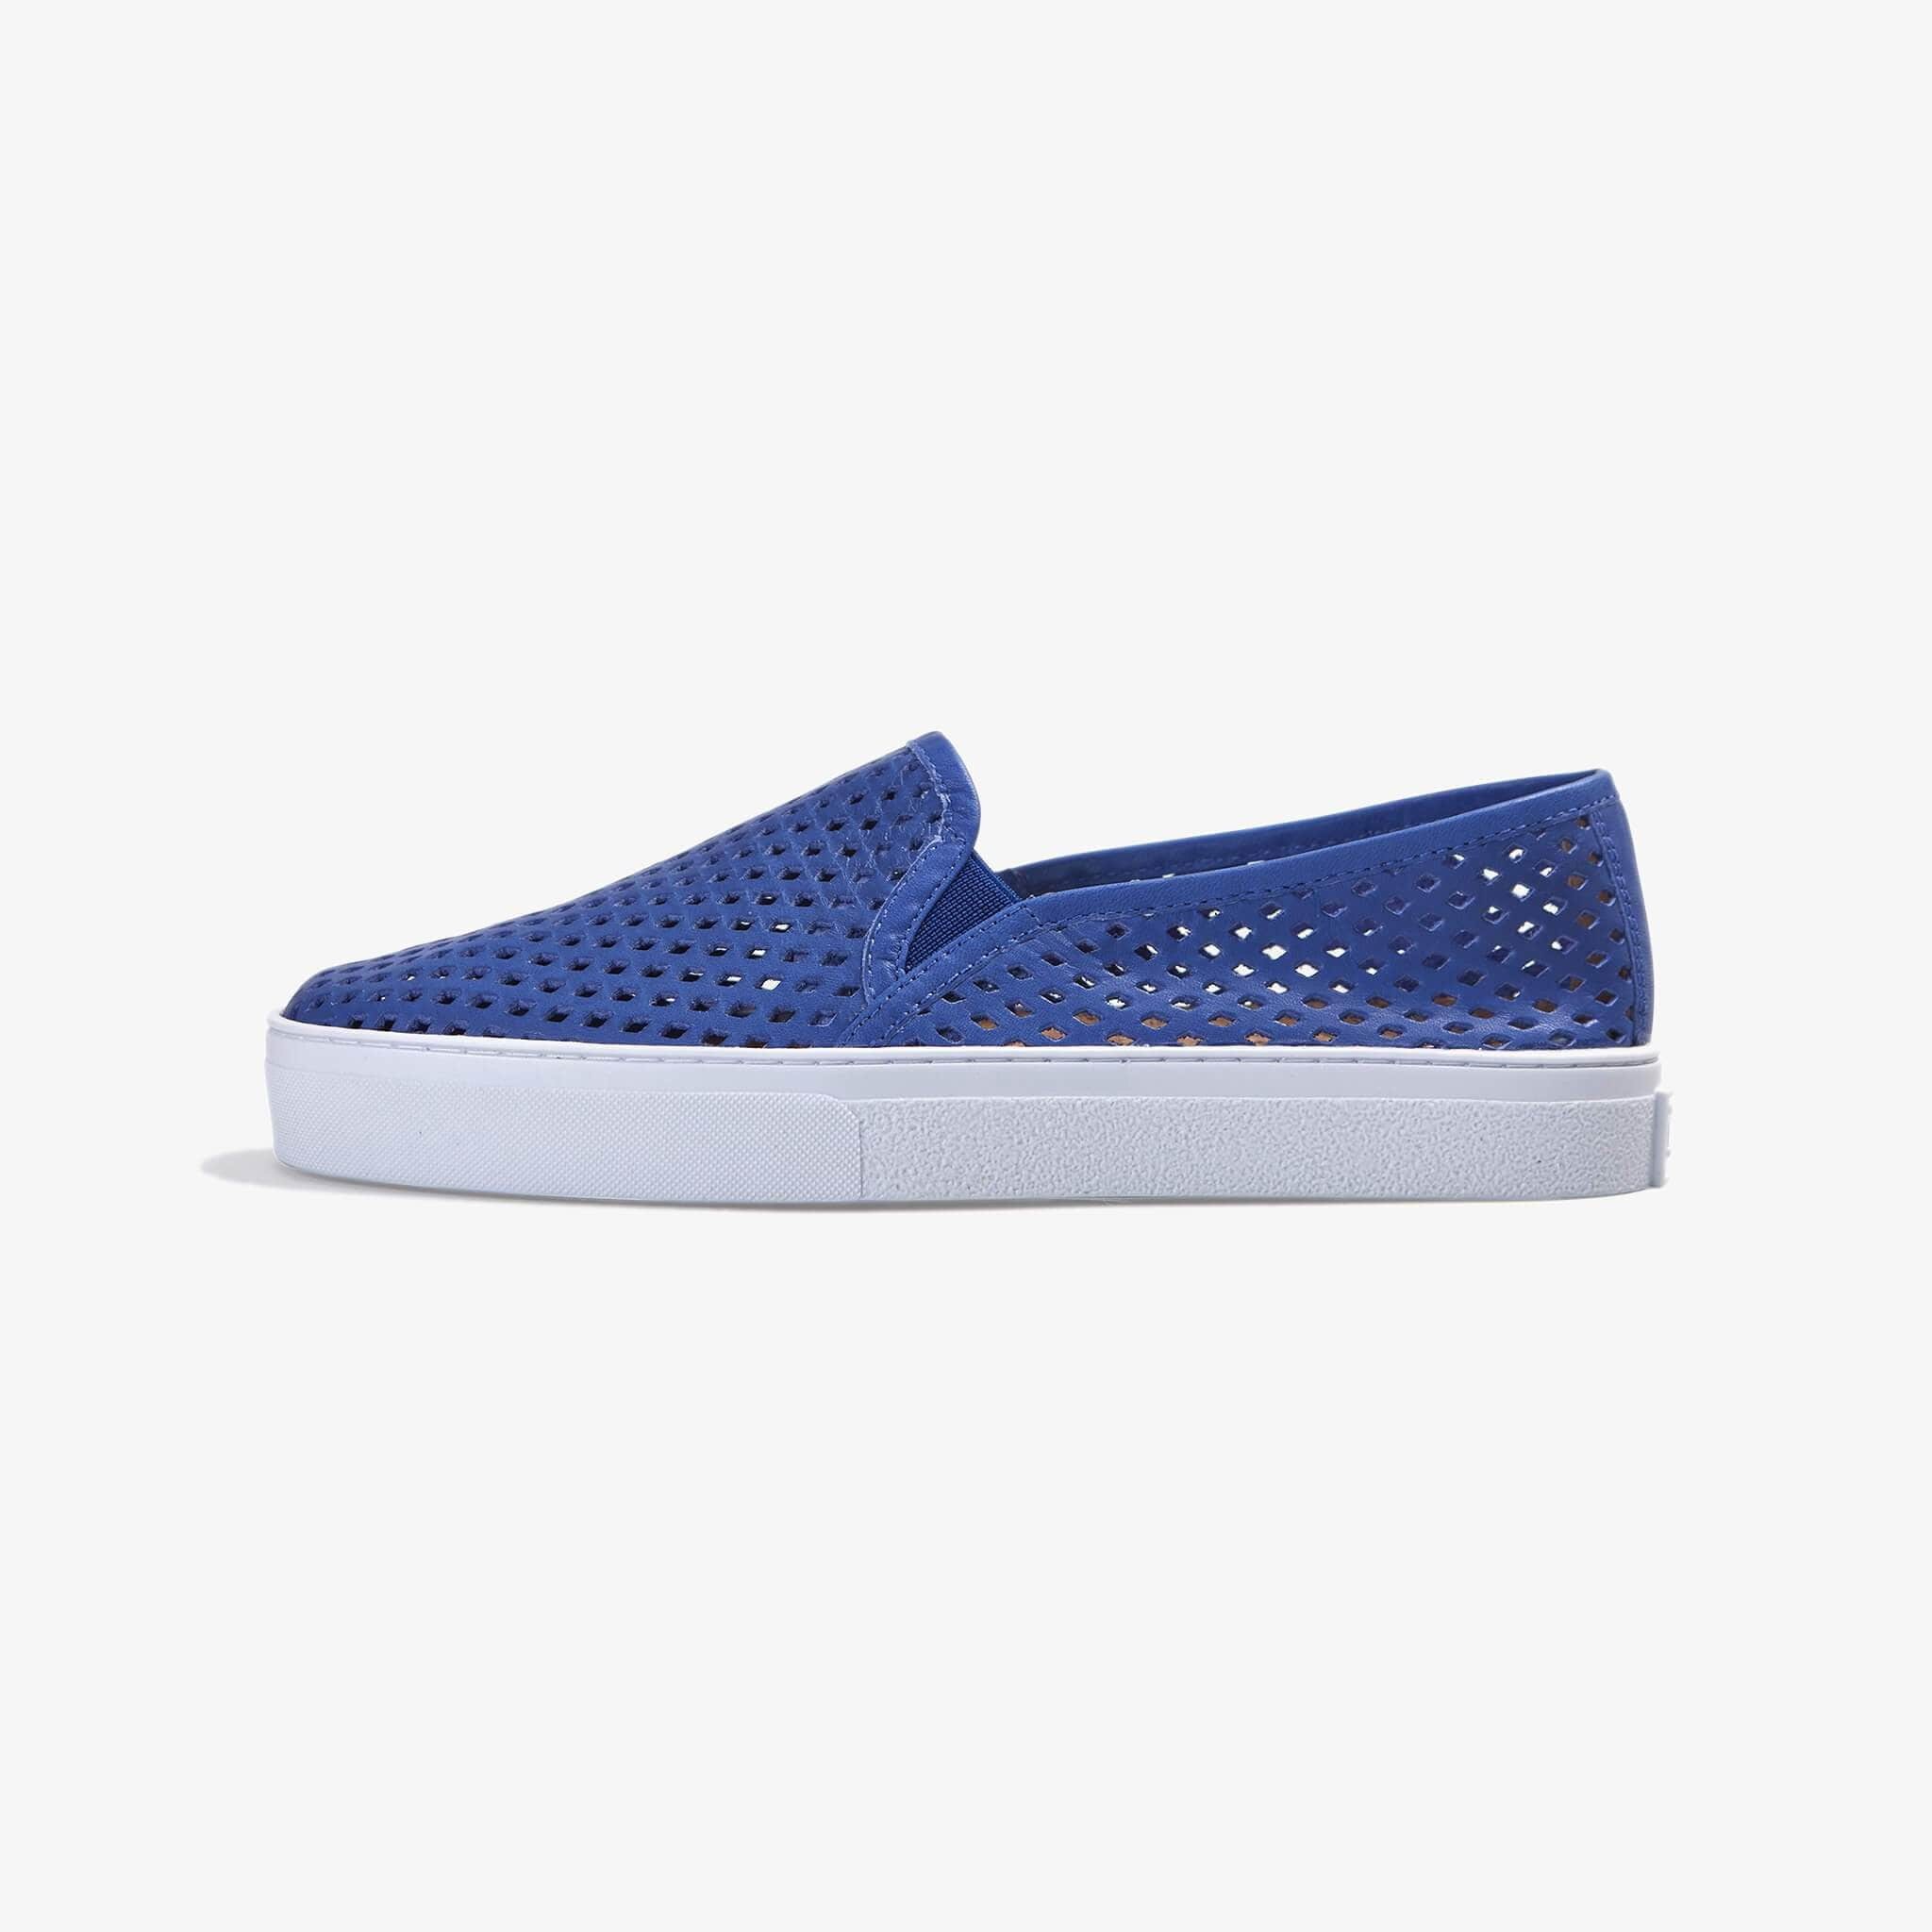 Jibs Classic Galaxy Blue Slip On Sneaker-Shoe Side